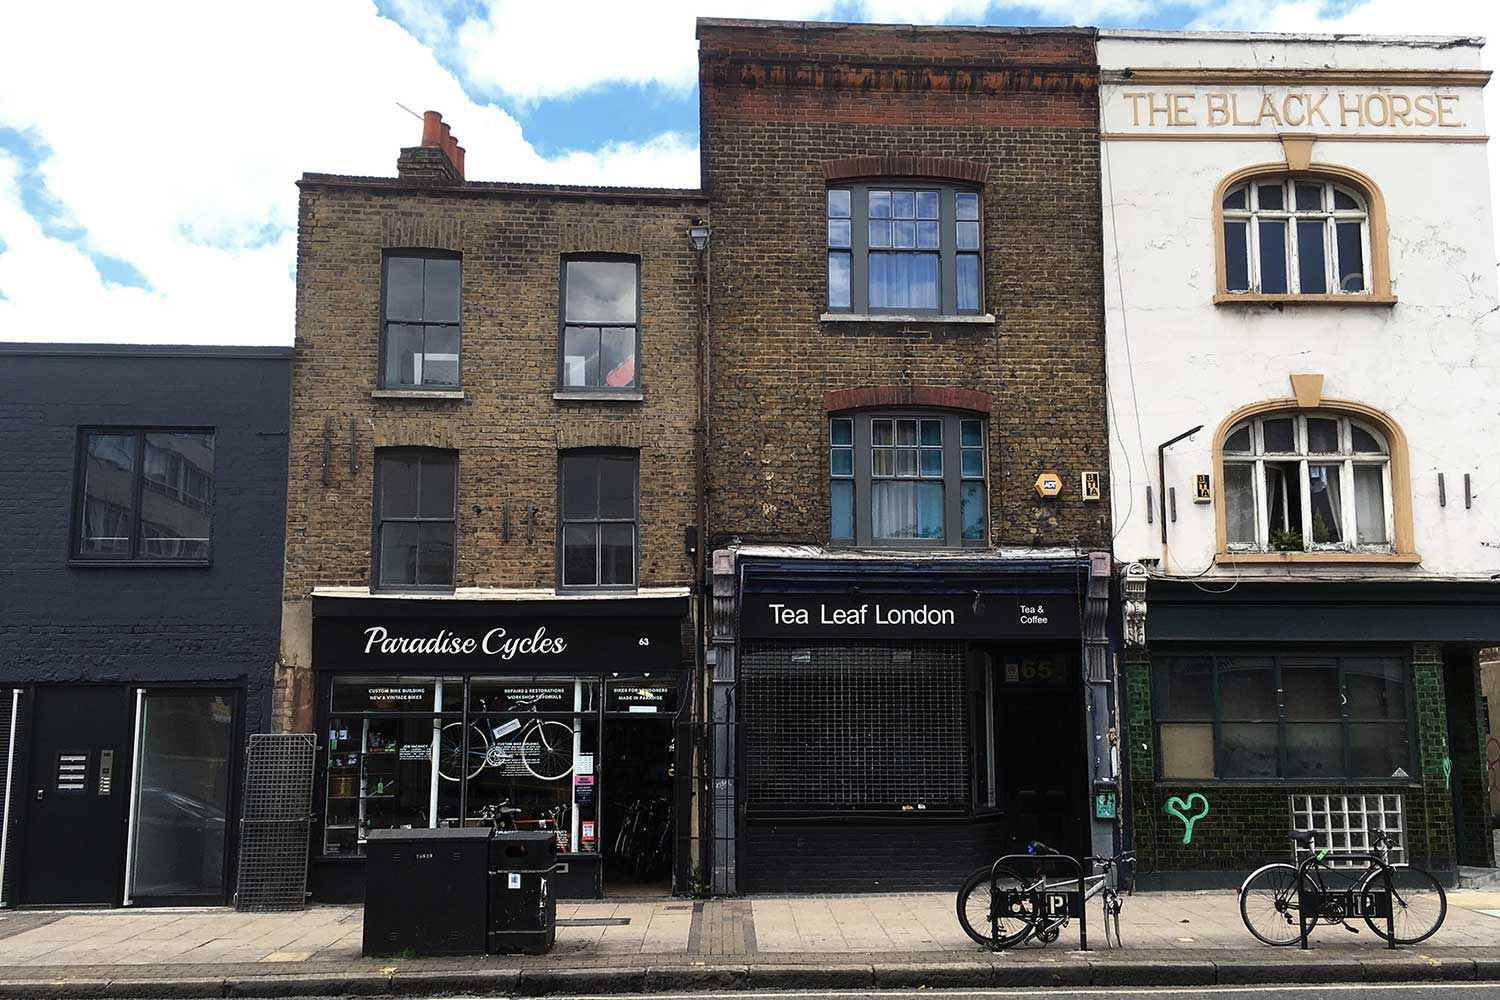 Shopfronts in Globe Town, East London